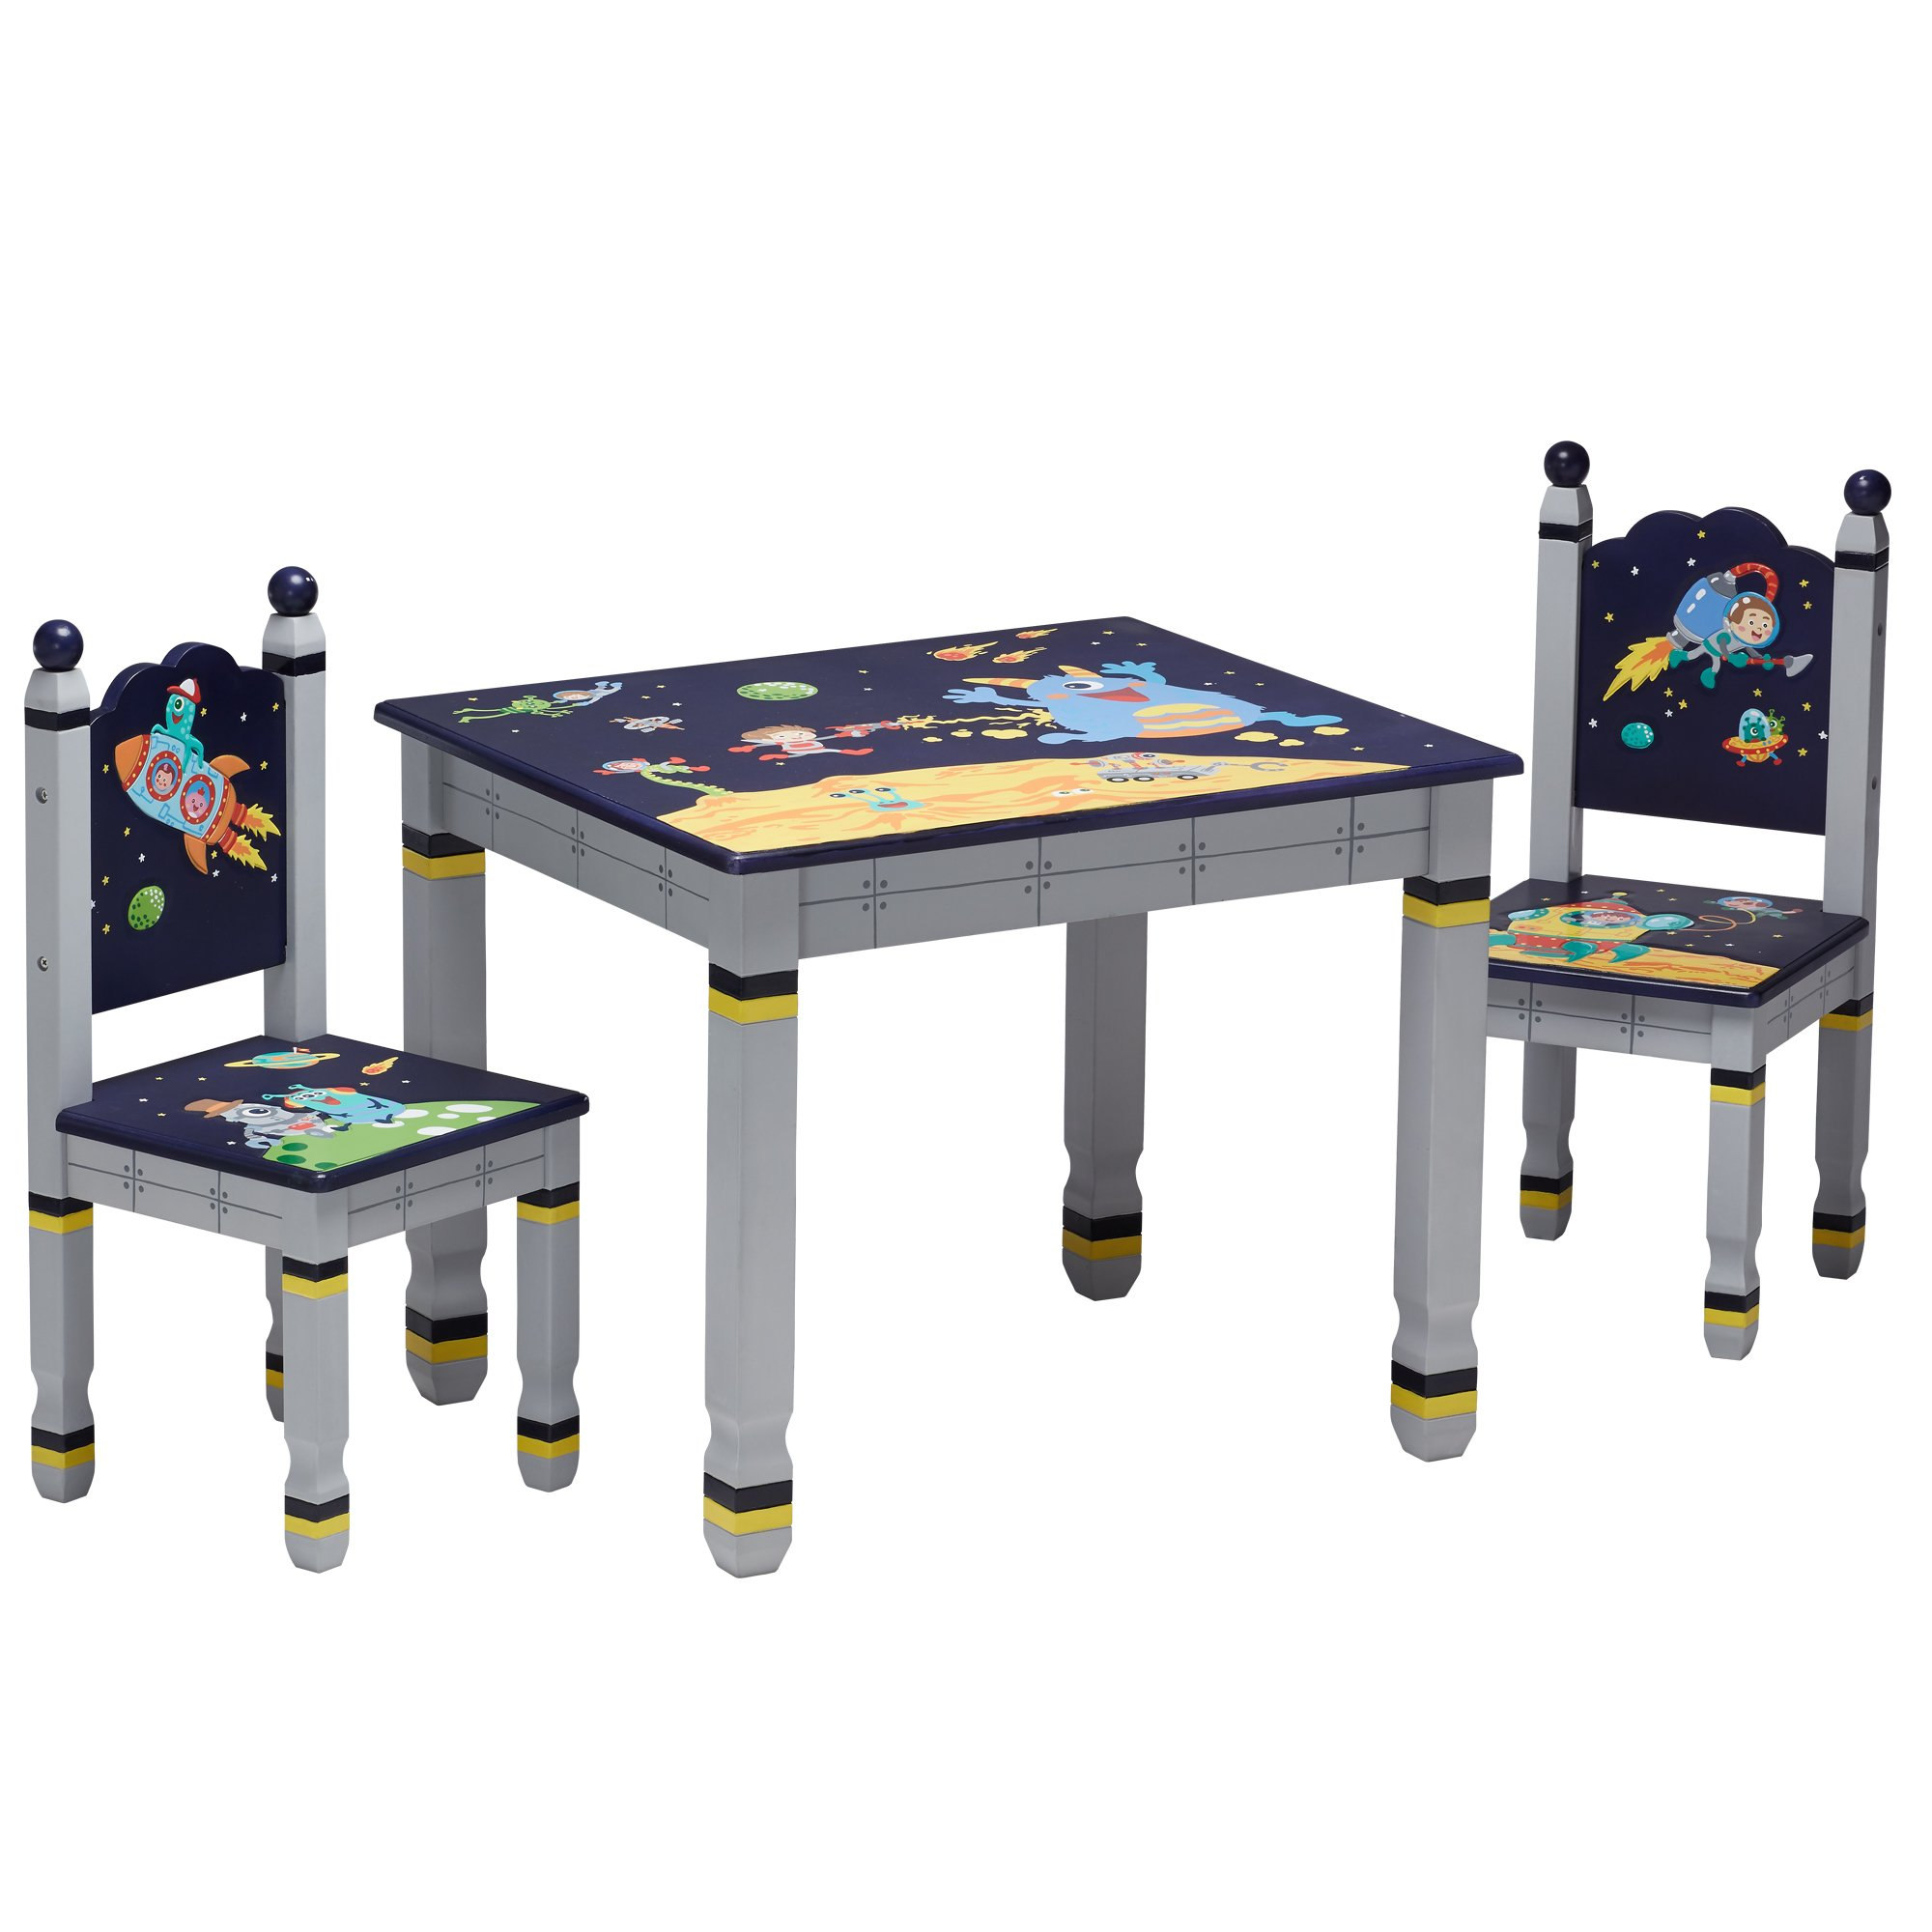 Fantasy Fields - Outer Space Kids Wooden Table & Set of 2 Chairs | Imagination Inspiring | Hand Crafted & Hand Painted Details | Child-Safe. Lead Free Water-based Paint